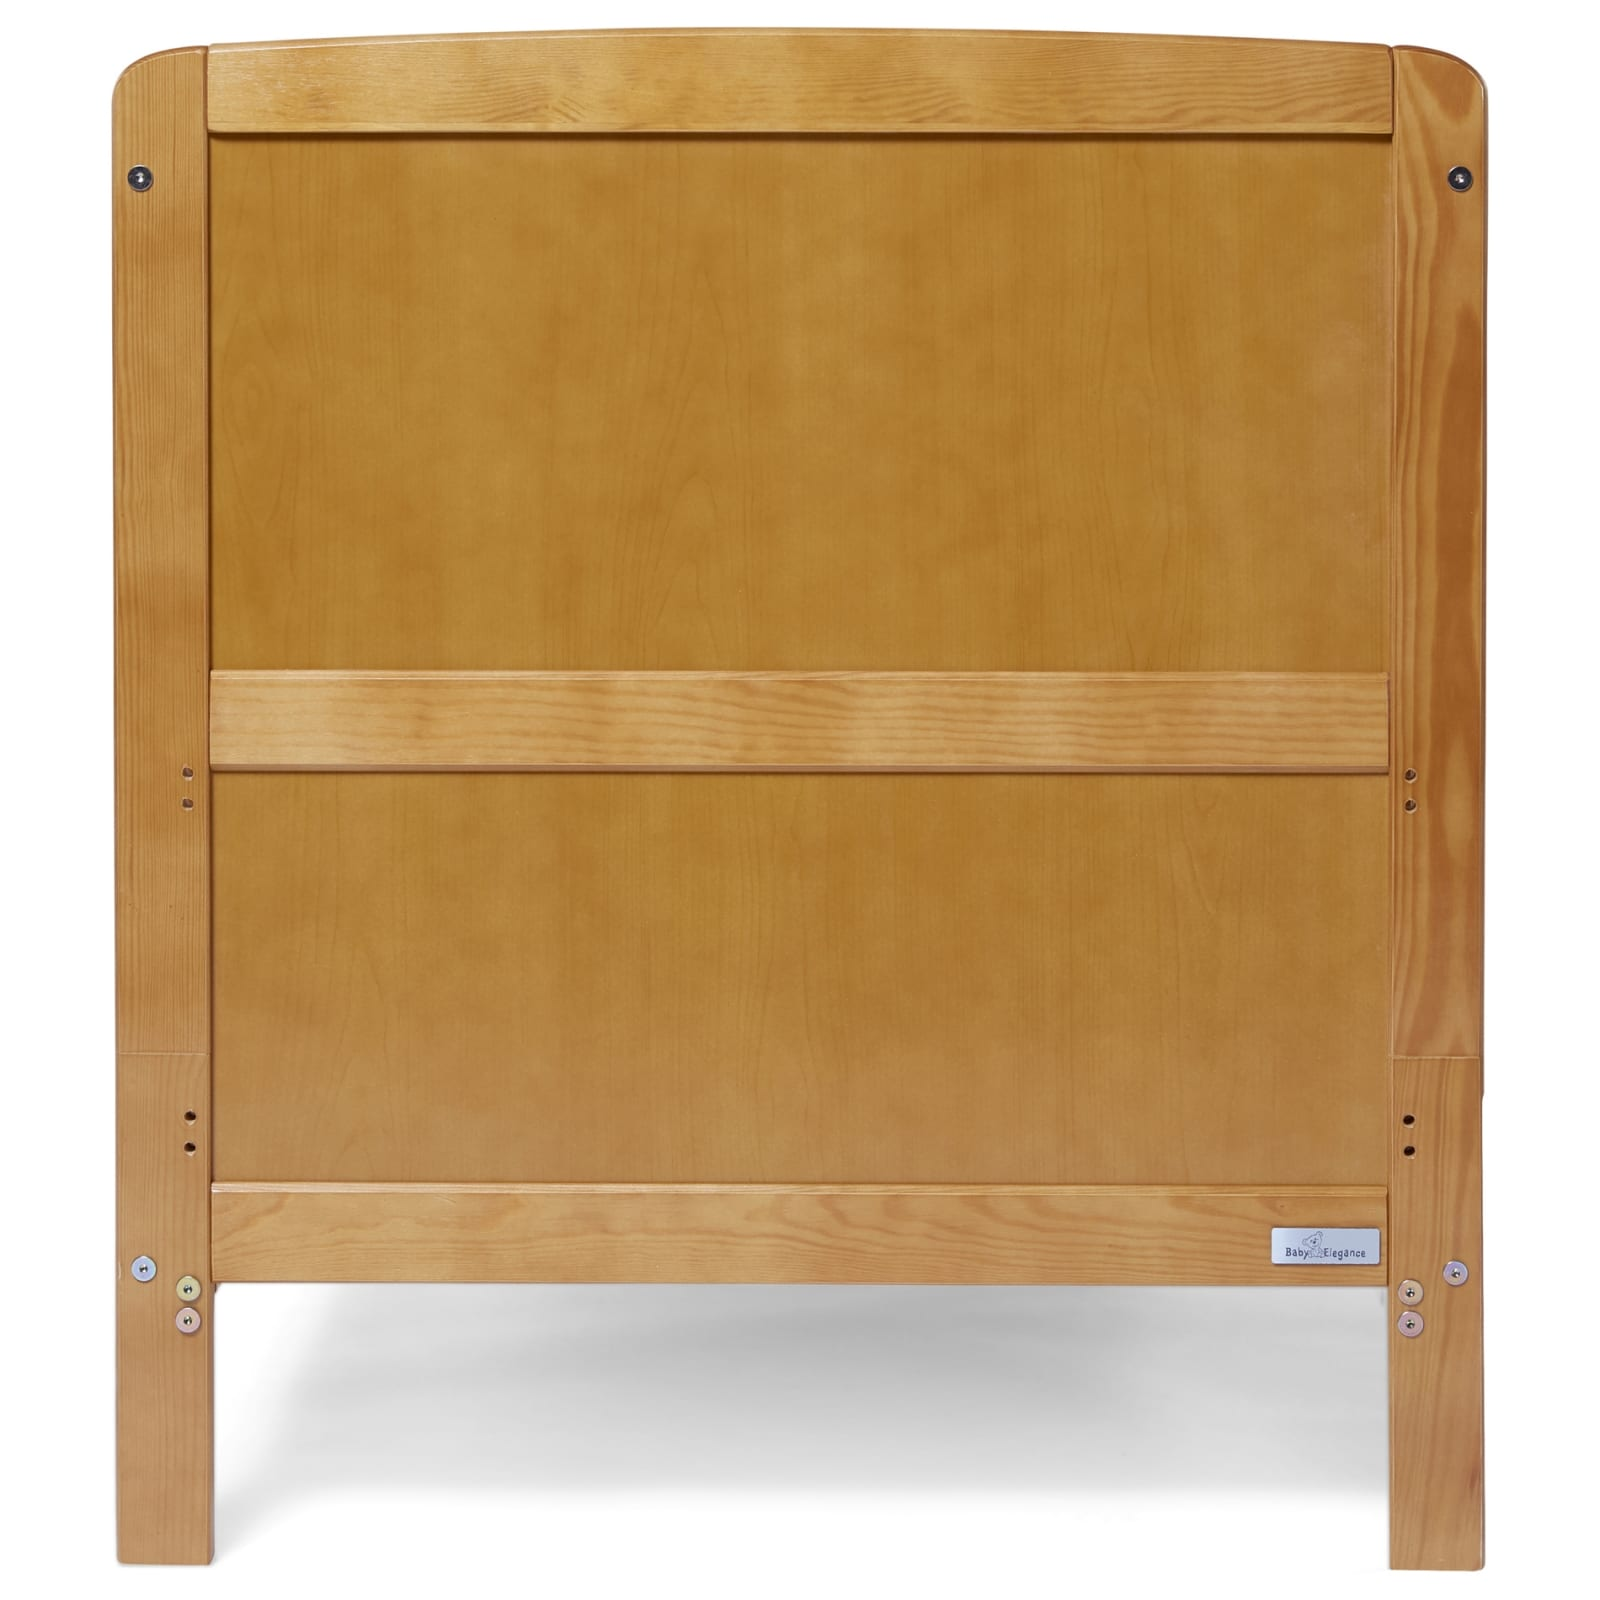 Travis Cot Bed – Pine product image